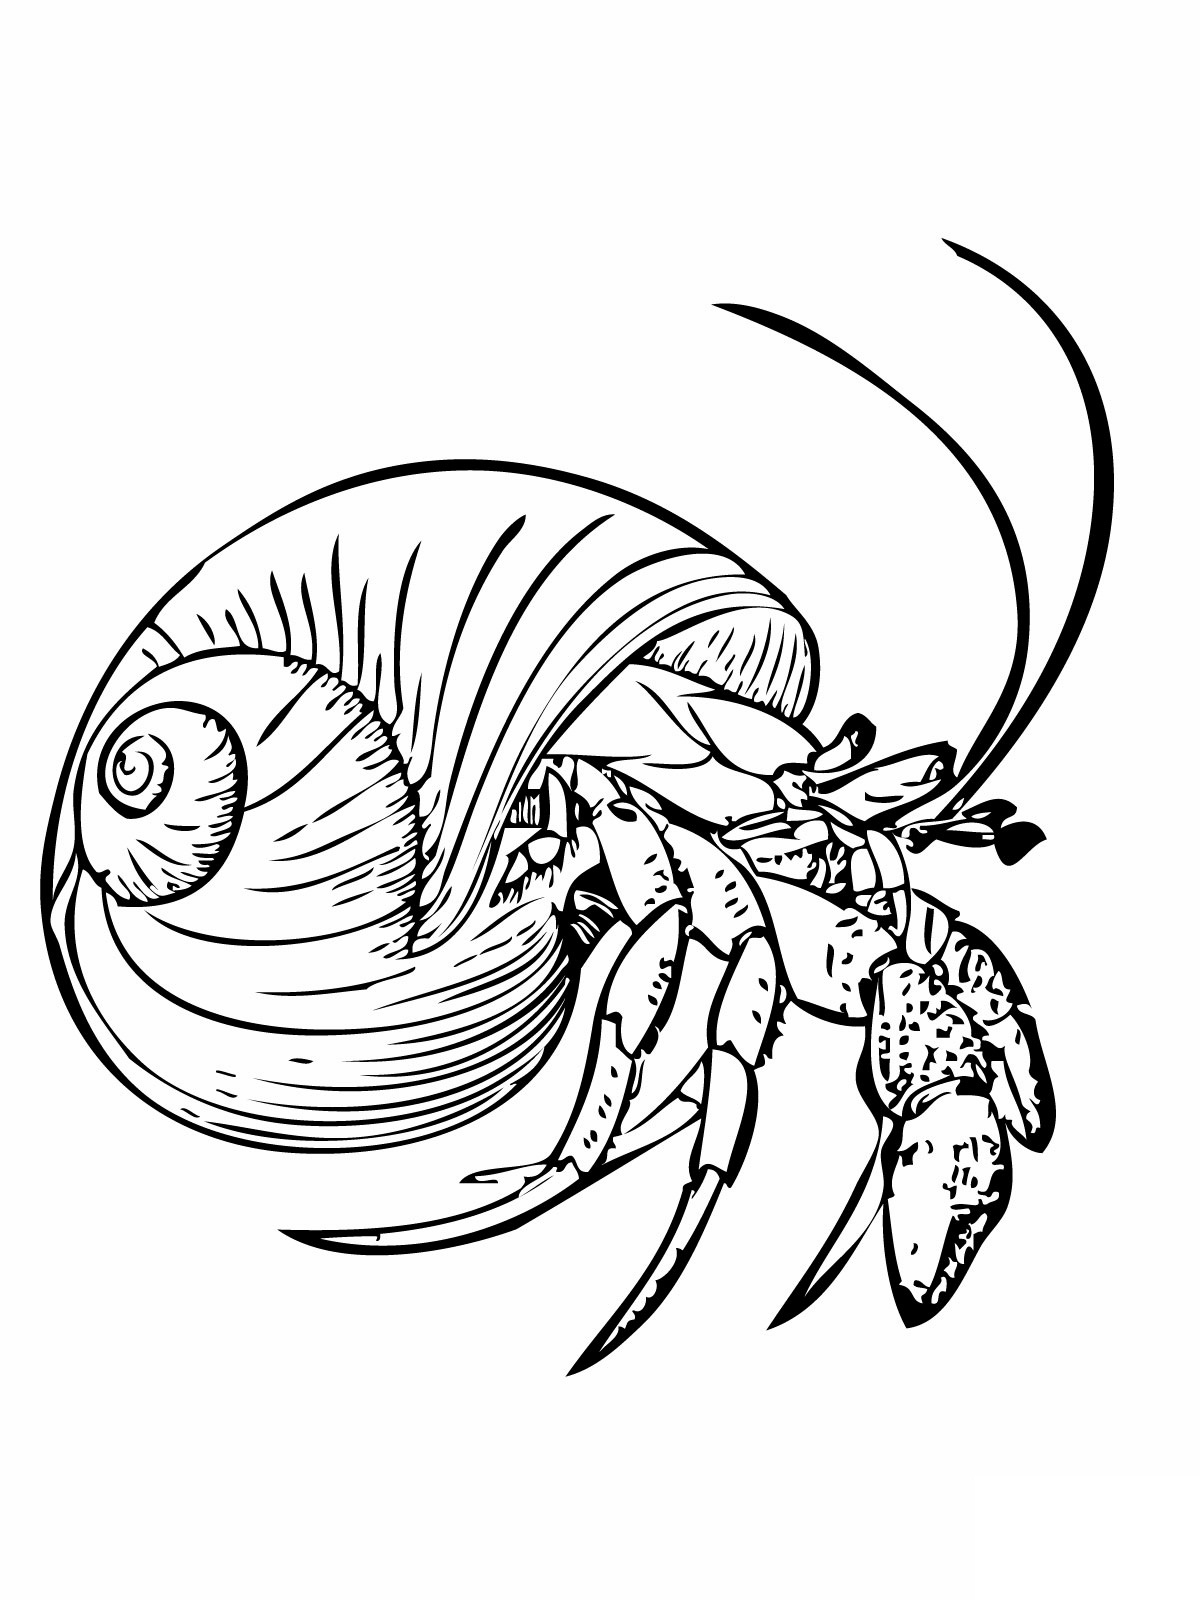 hermit crab coloring page - free printable hermit crab coloring pages for kids